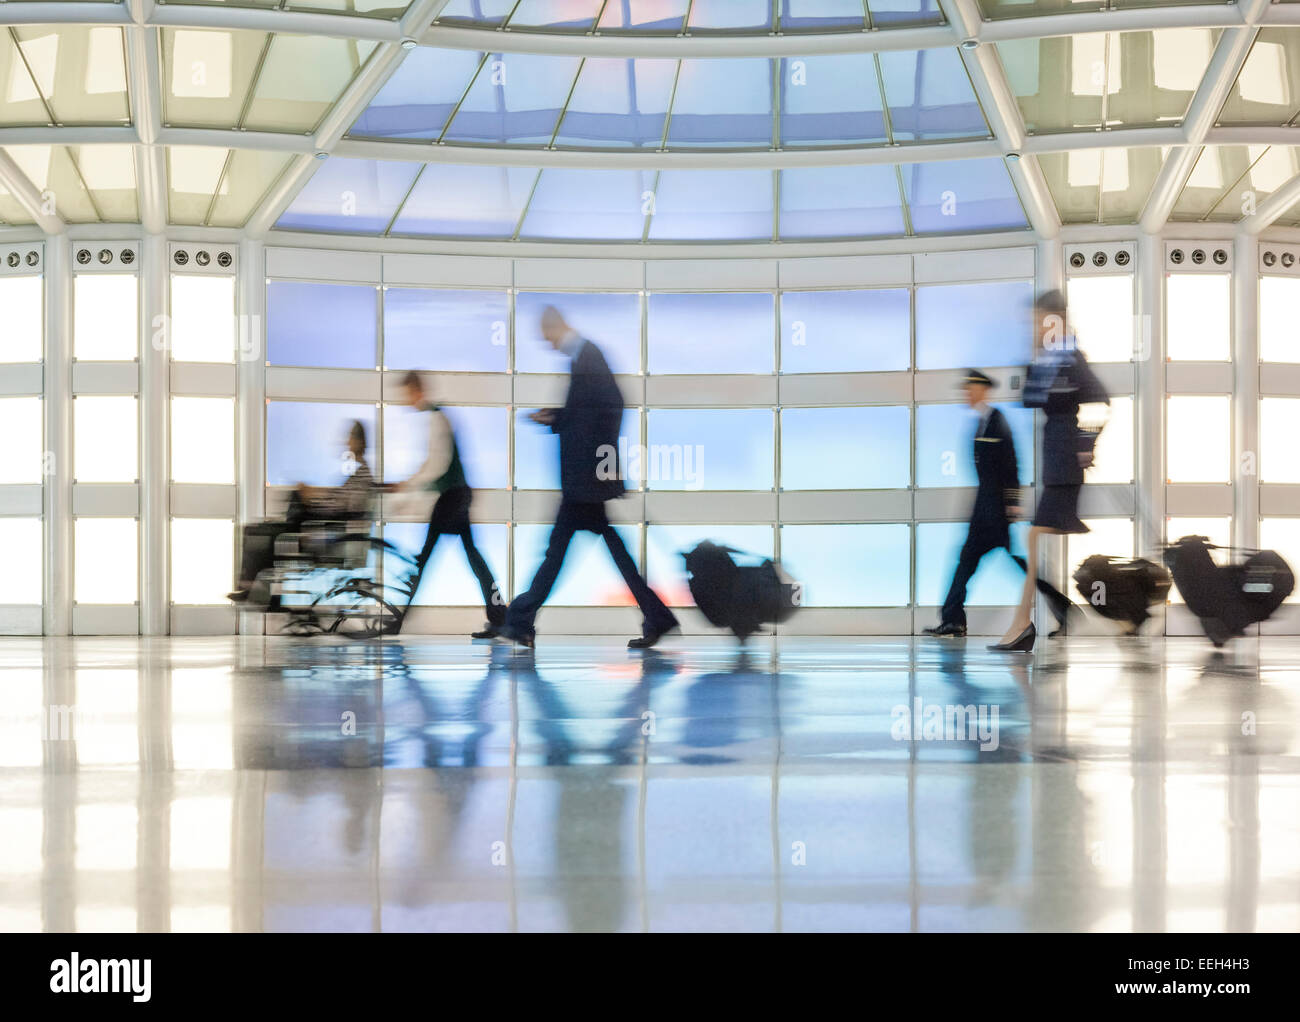 http://c7.alamy.com/comp/EEH4H3/united-terminal-pedestrian-tunnel-at-chicago-ohare-international-airport-EEH4H3.jpg